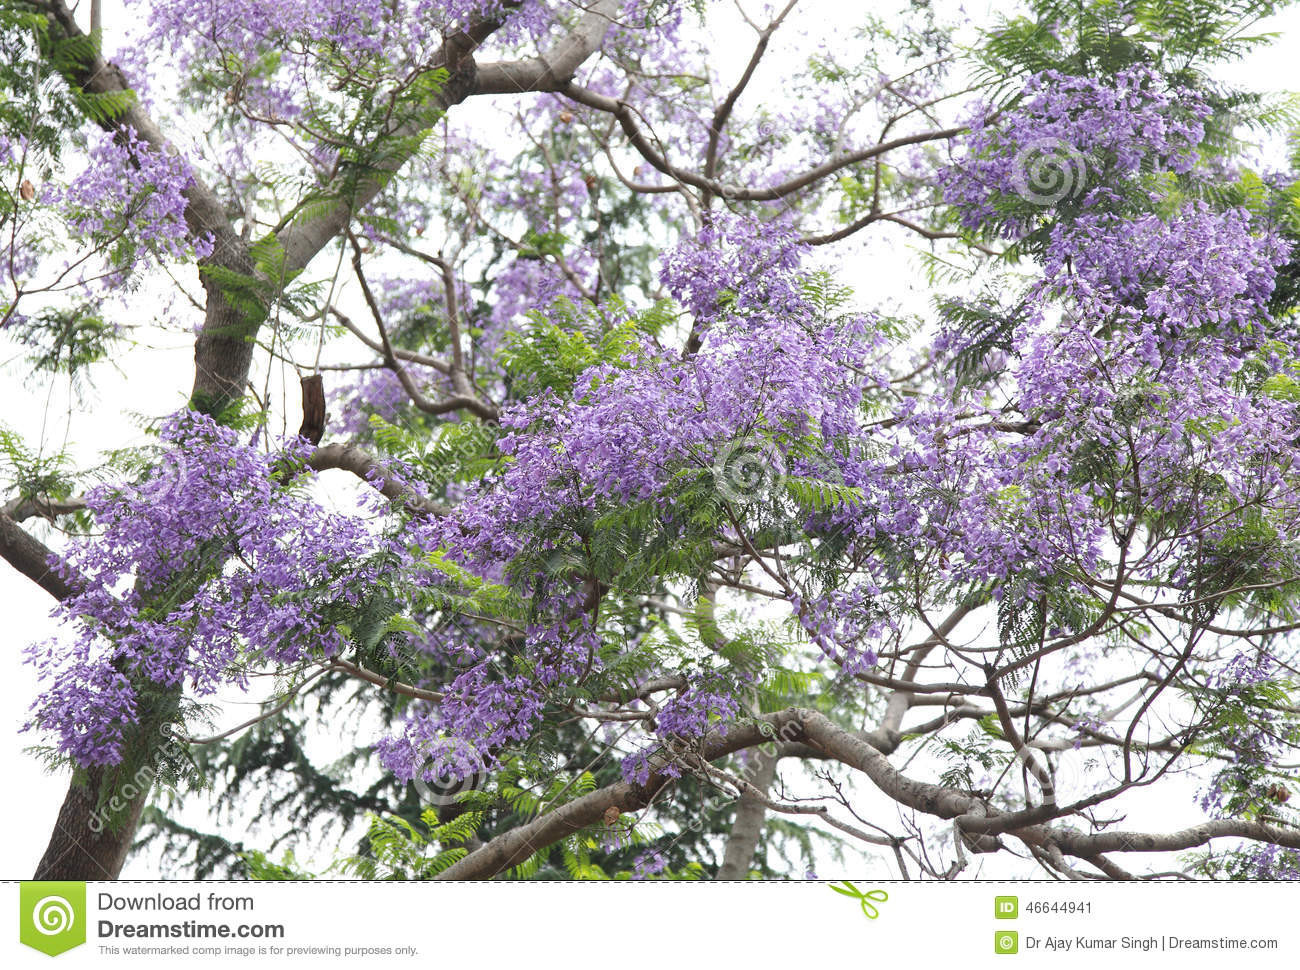 Shrubs with purple flowers at end of branch - Beautiful Purple Flowers Of Jacaranda